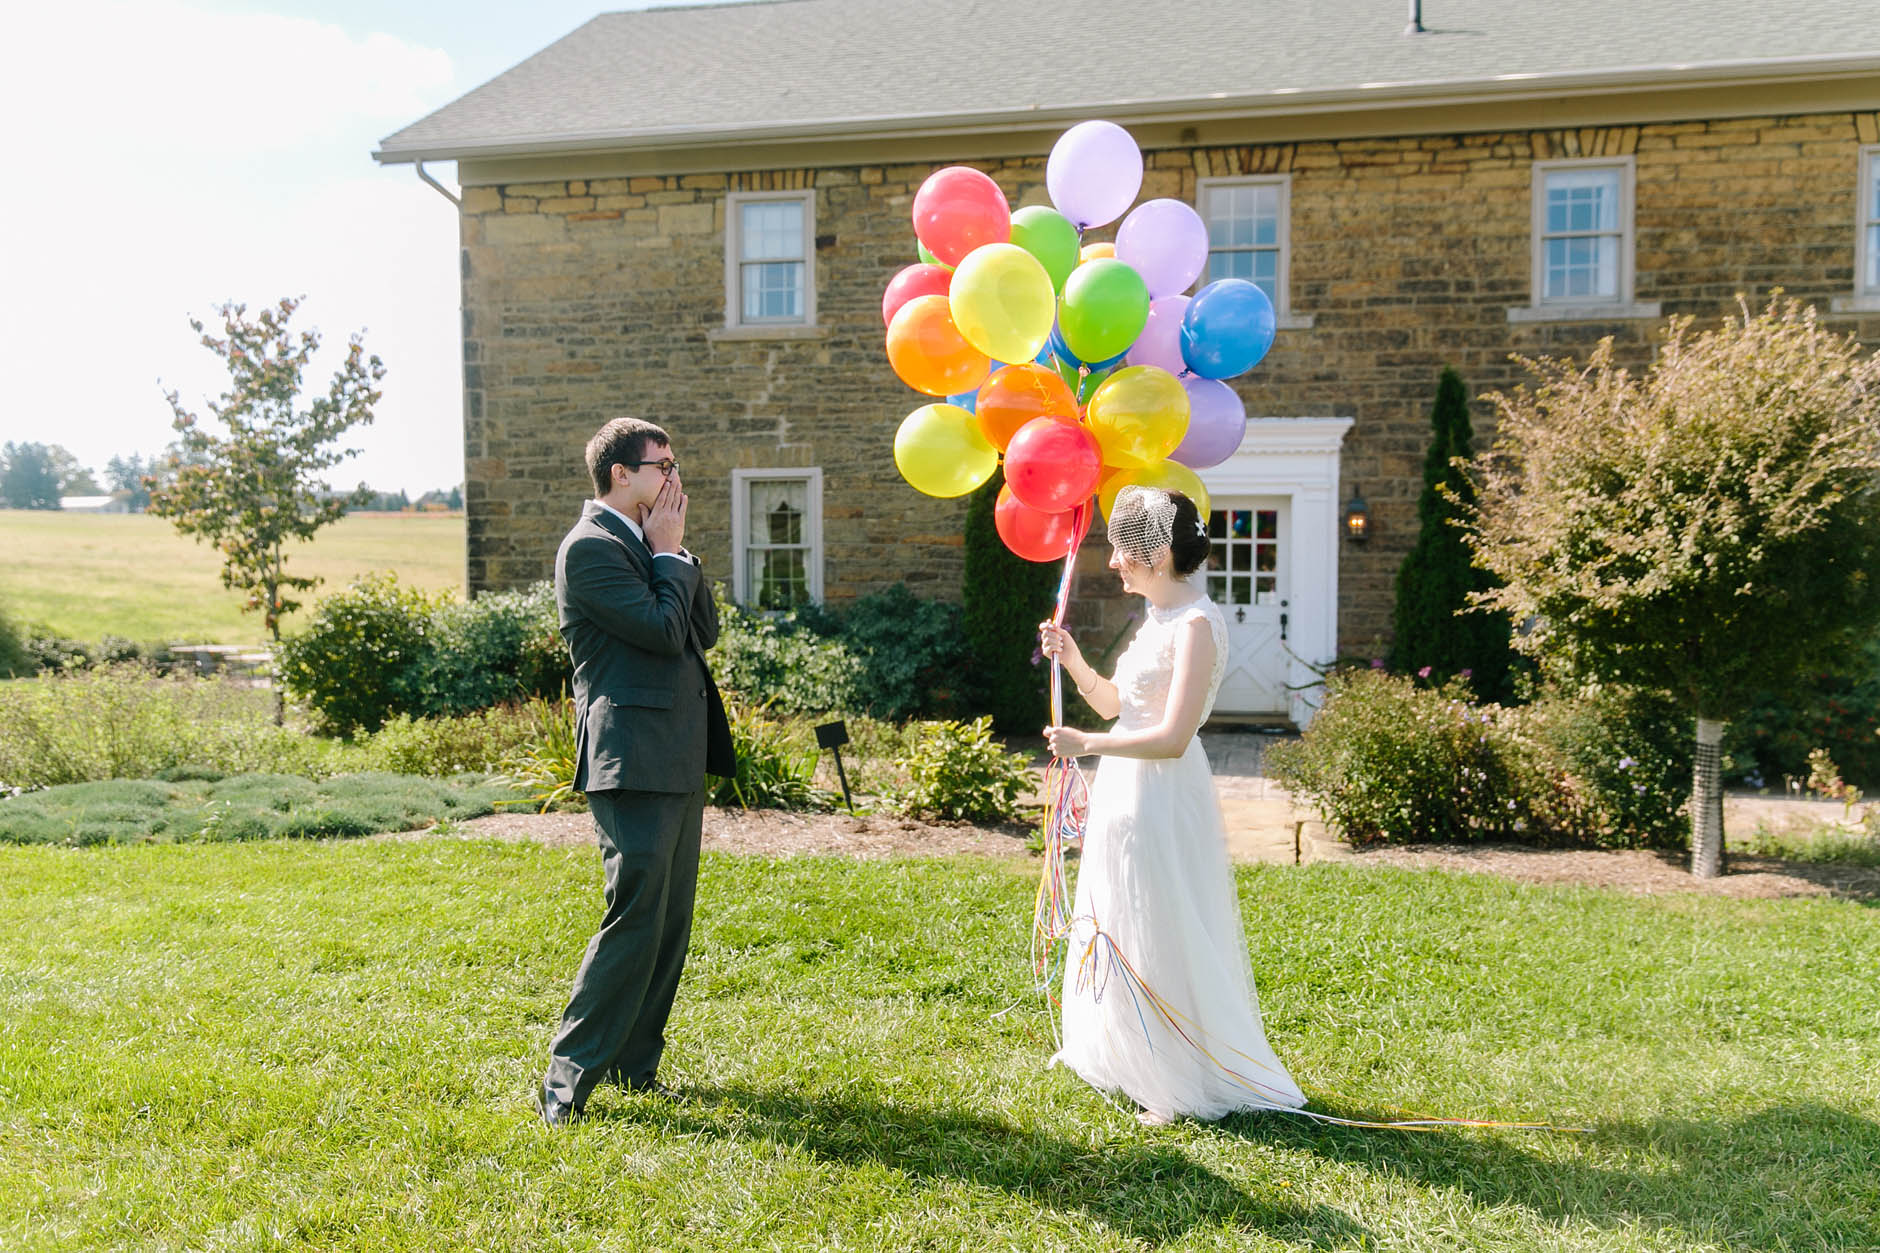 A fall wedding at the Excelsior Room and Secrest Arboretum in Wooster with Rachel & Matt. All photos created by Maria Sharp Photography. To view more please visit, www.mariacsharp.com